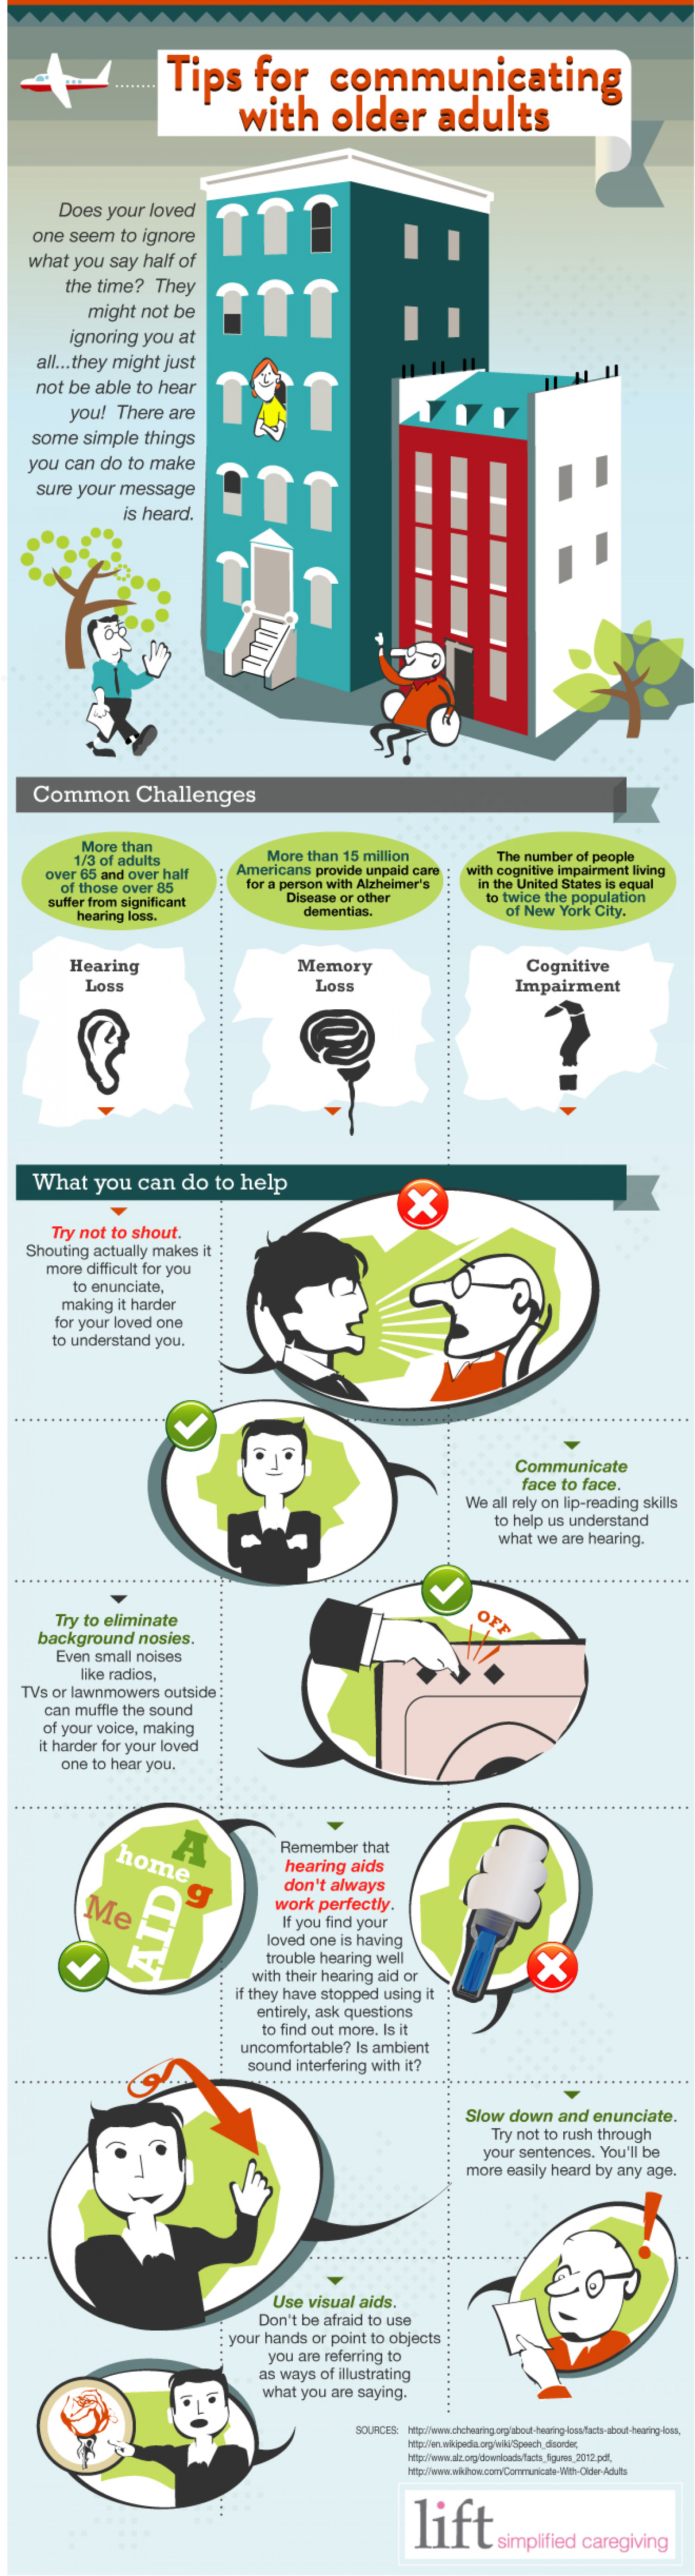 Tips For Communicating With Older Adults Infographic